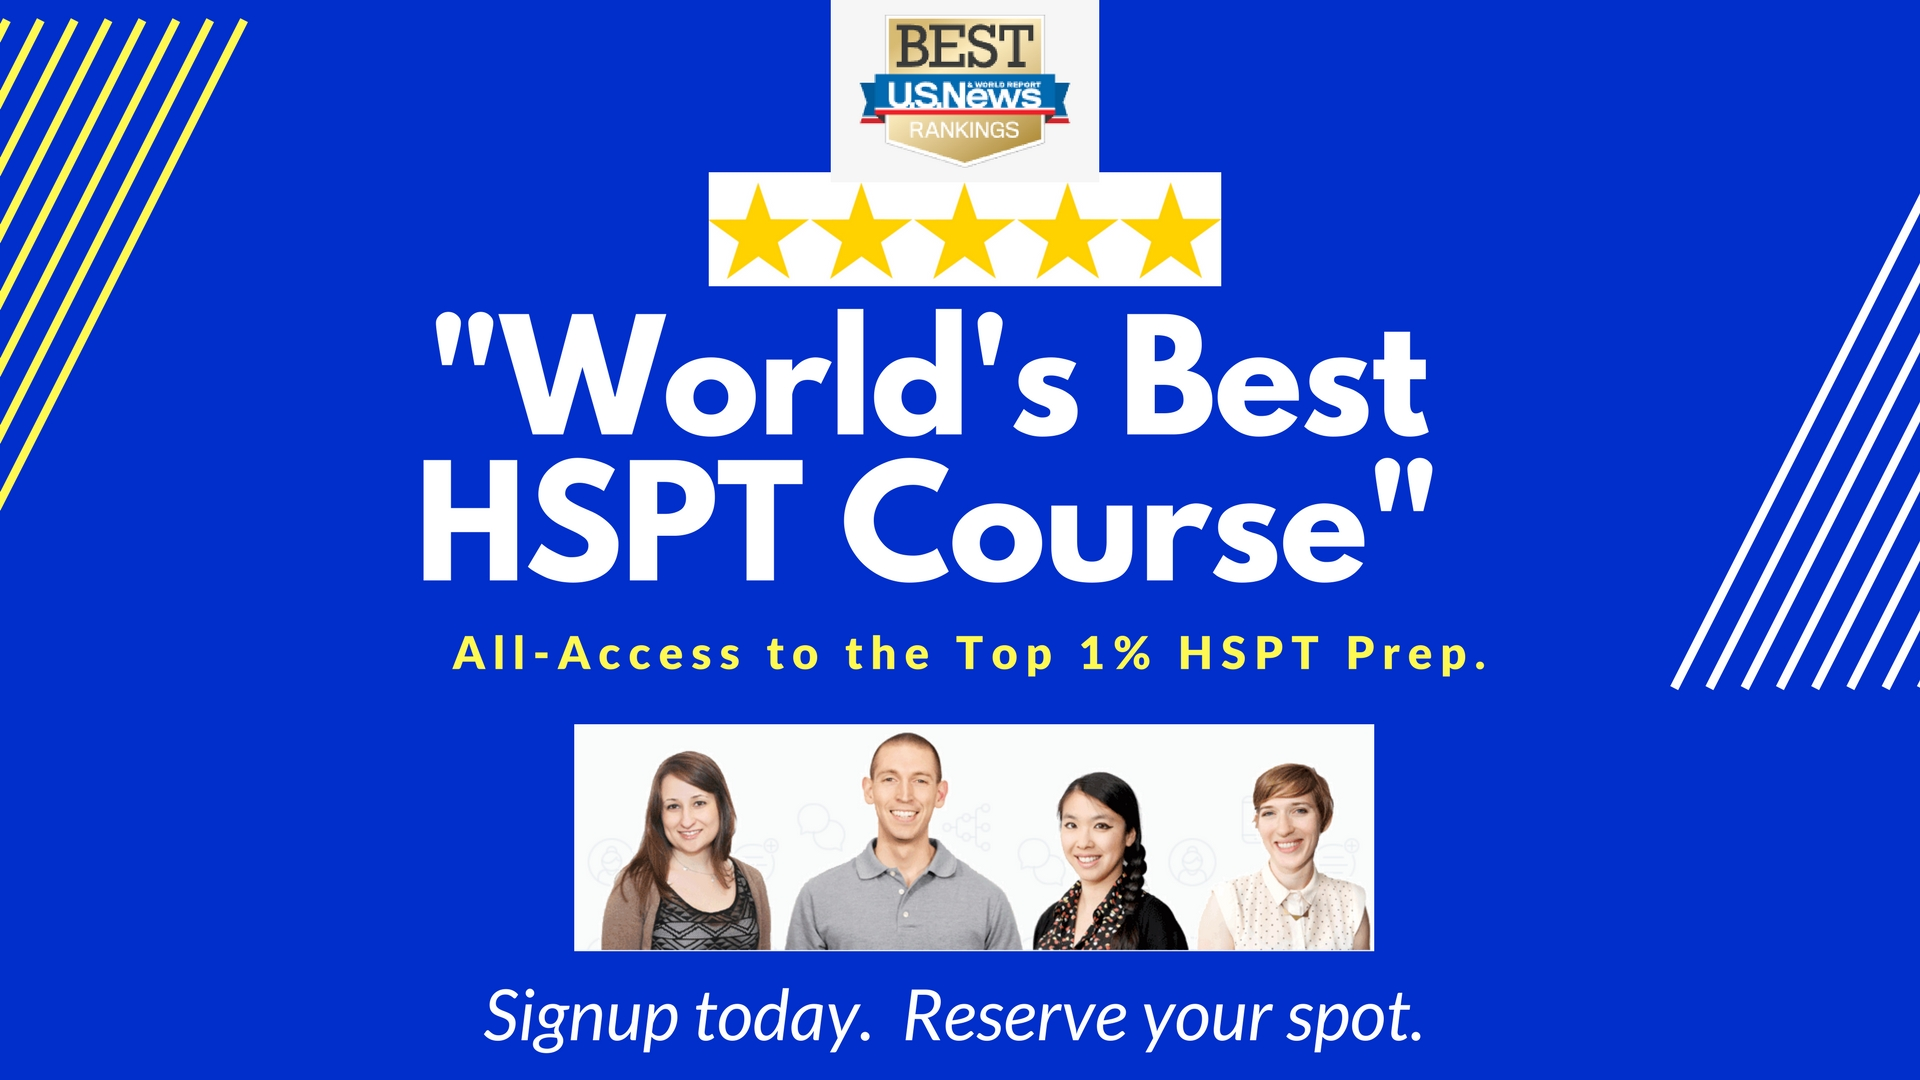 """""""World's Best HSPT Course"""" reviewed by Archdiocese."""